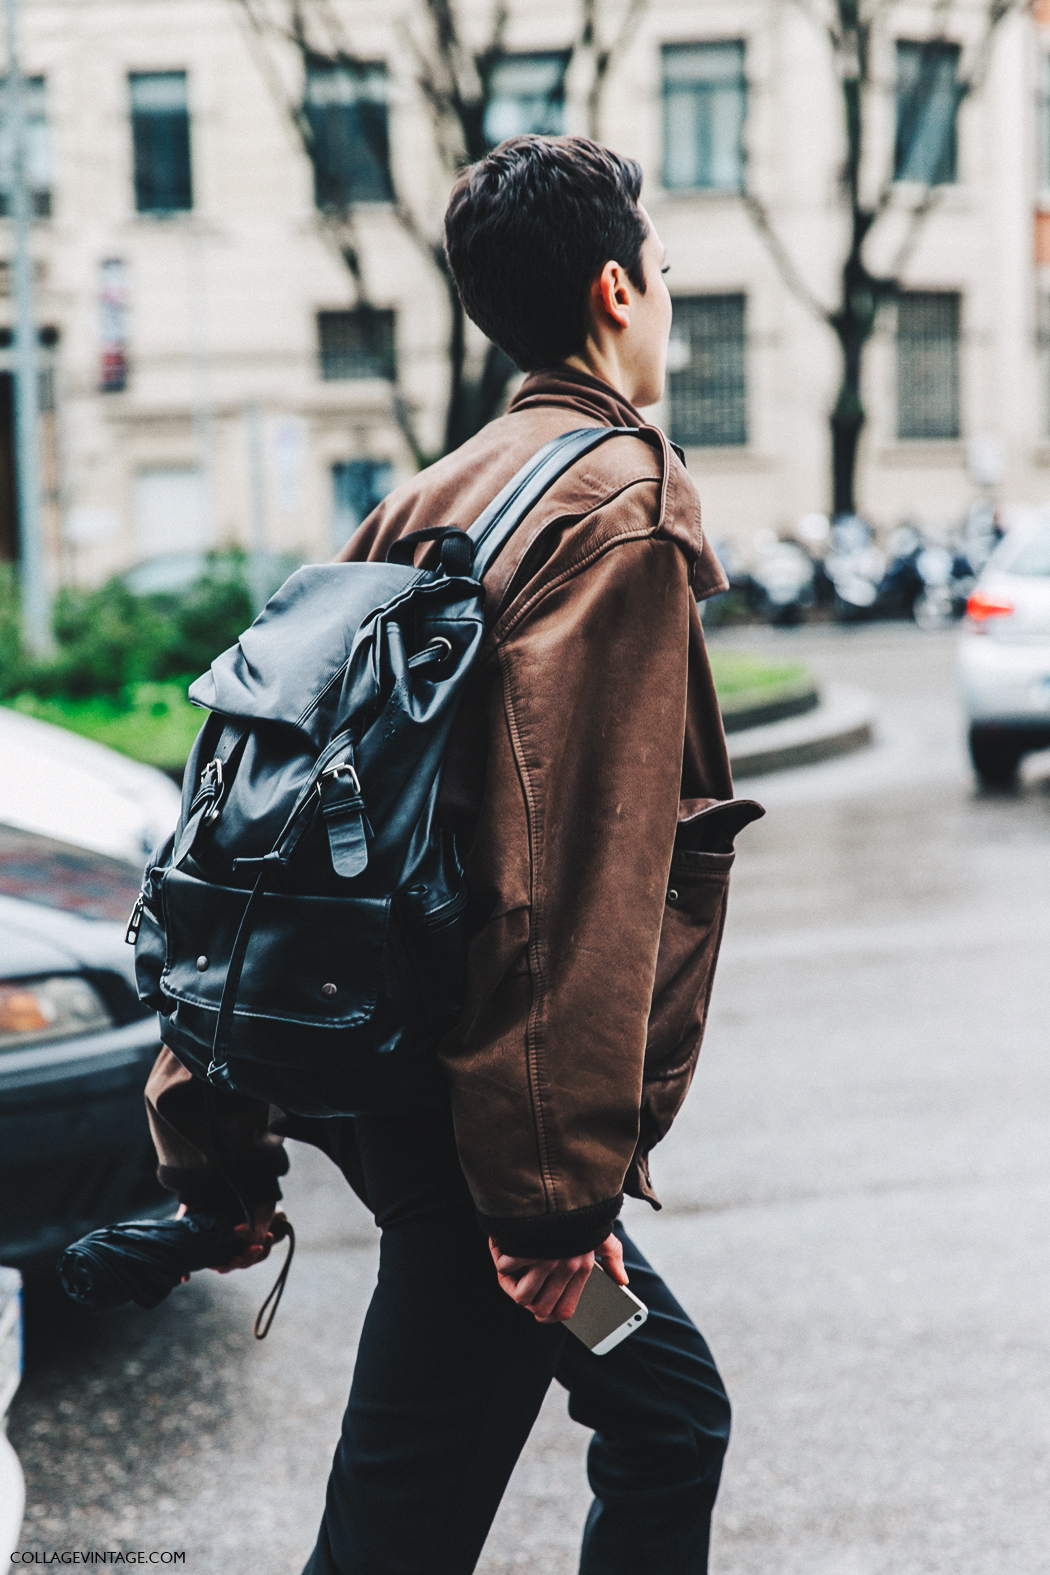 Milan_Fashion_Week_Fall_16-MFW-Street_Style-Collage_Vintage-Leather_Bomber-Armani_Backpack-1